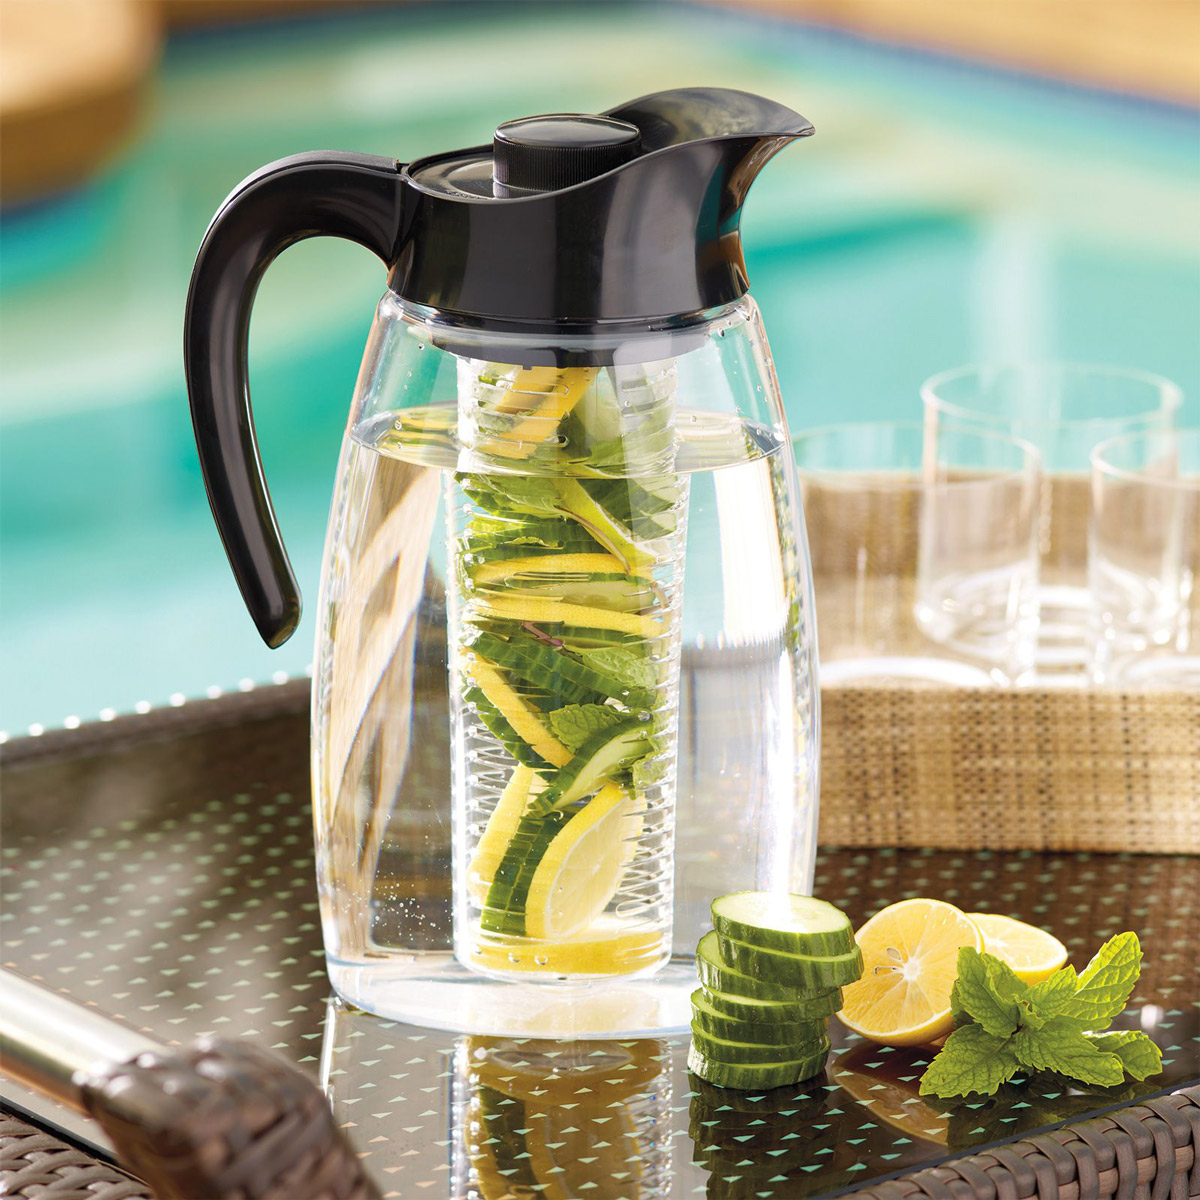 Flavor It Infusion Pitcher 3 In 1 Beverage System The